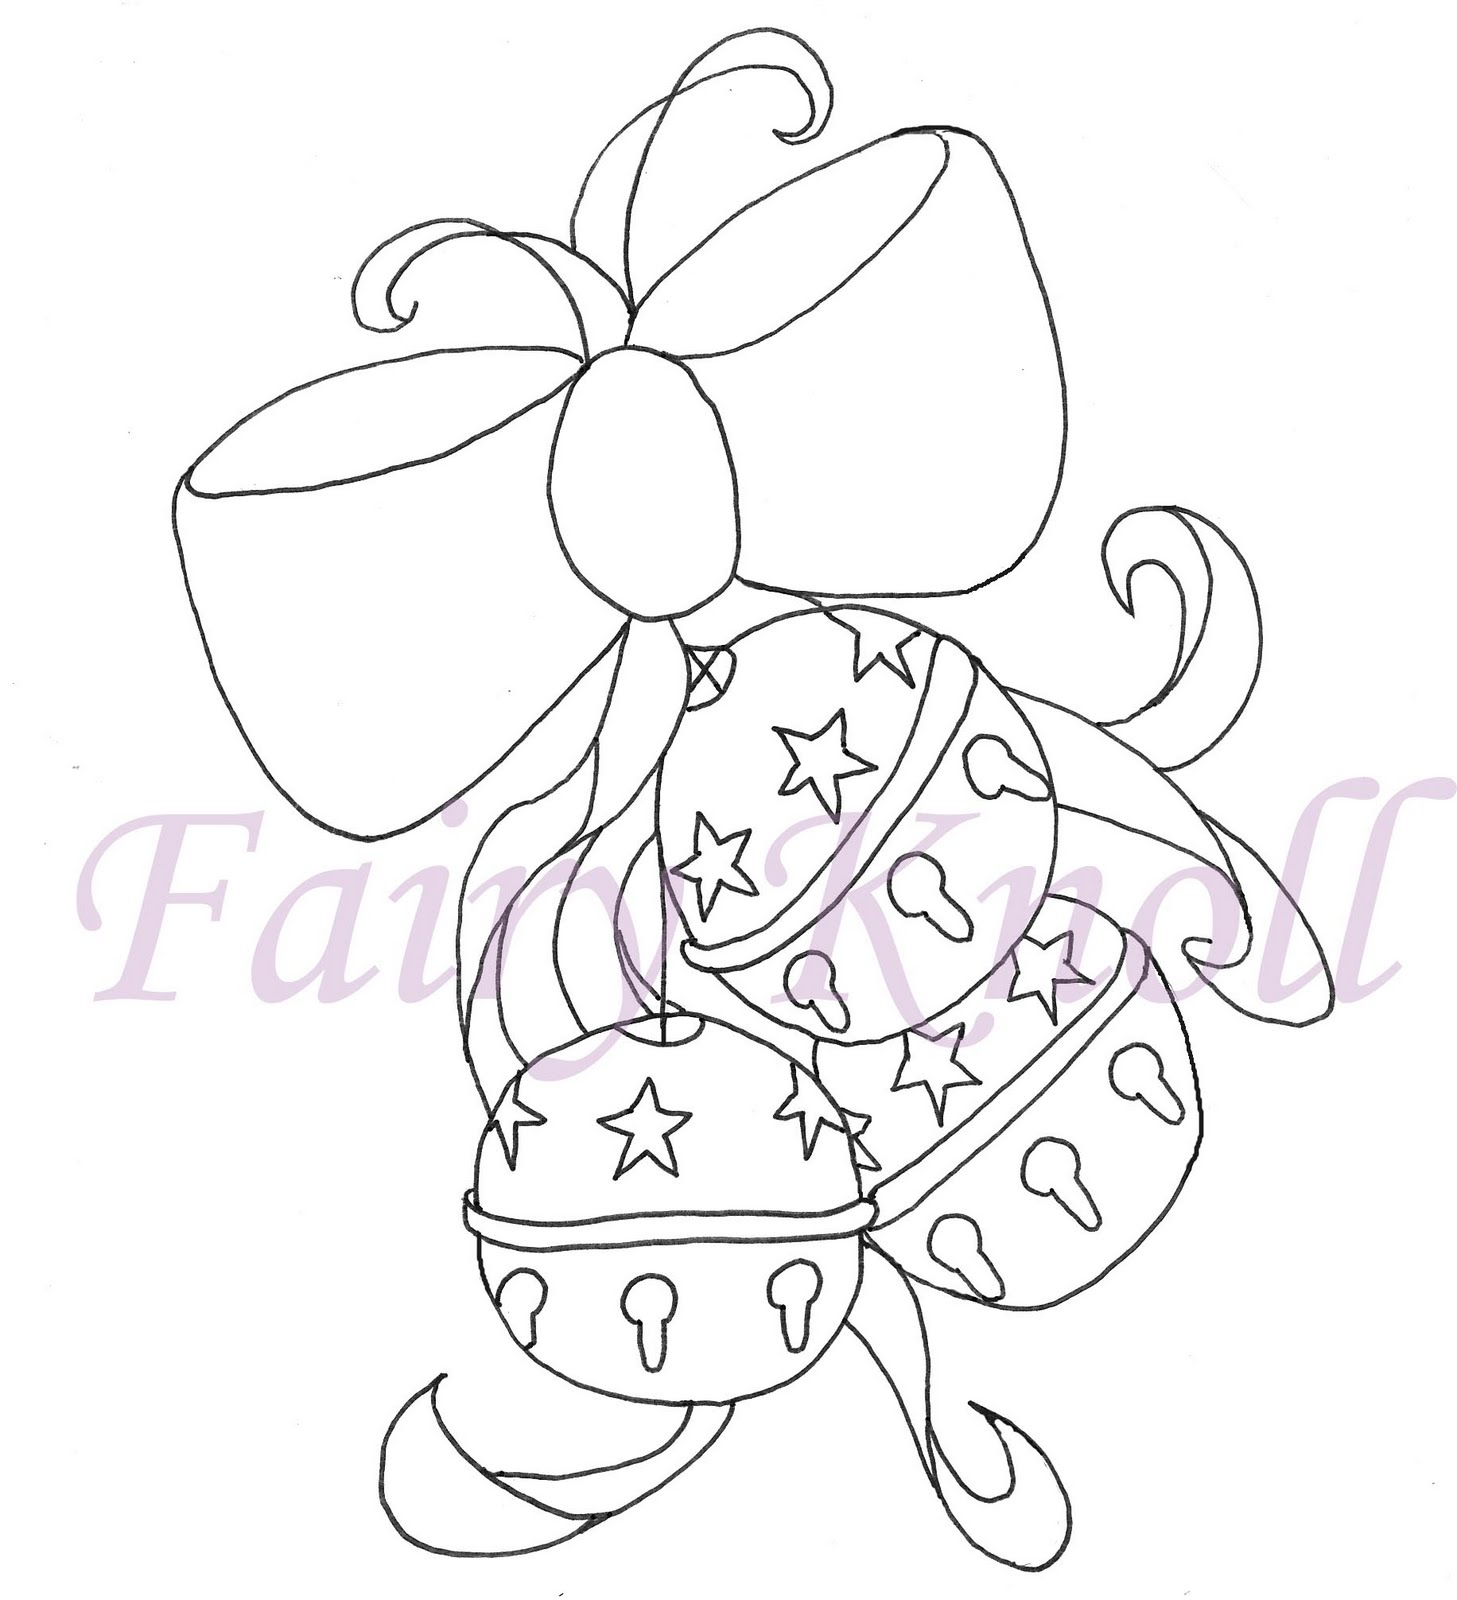 jingle bells coloring pages - photo#10